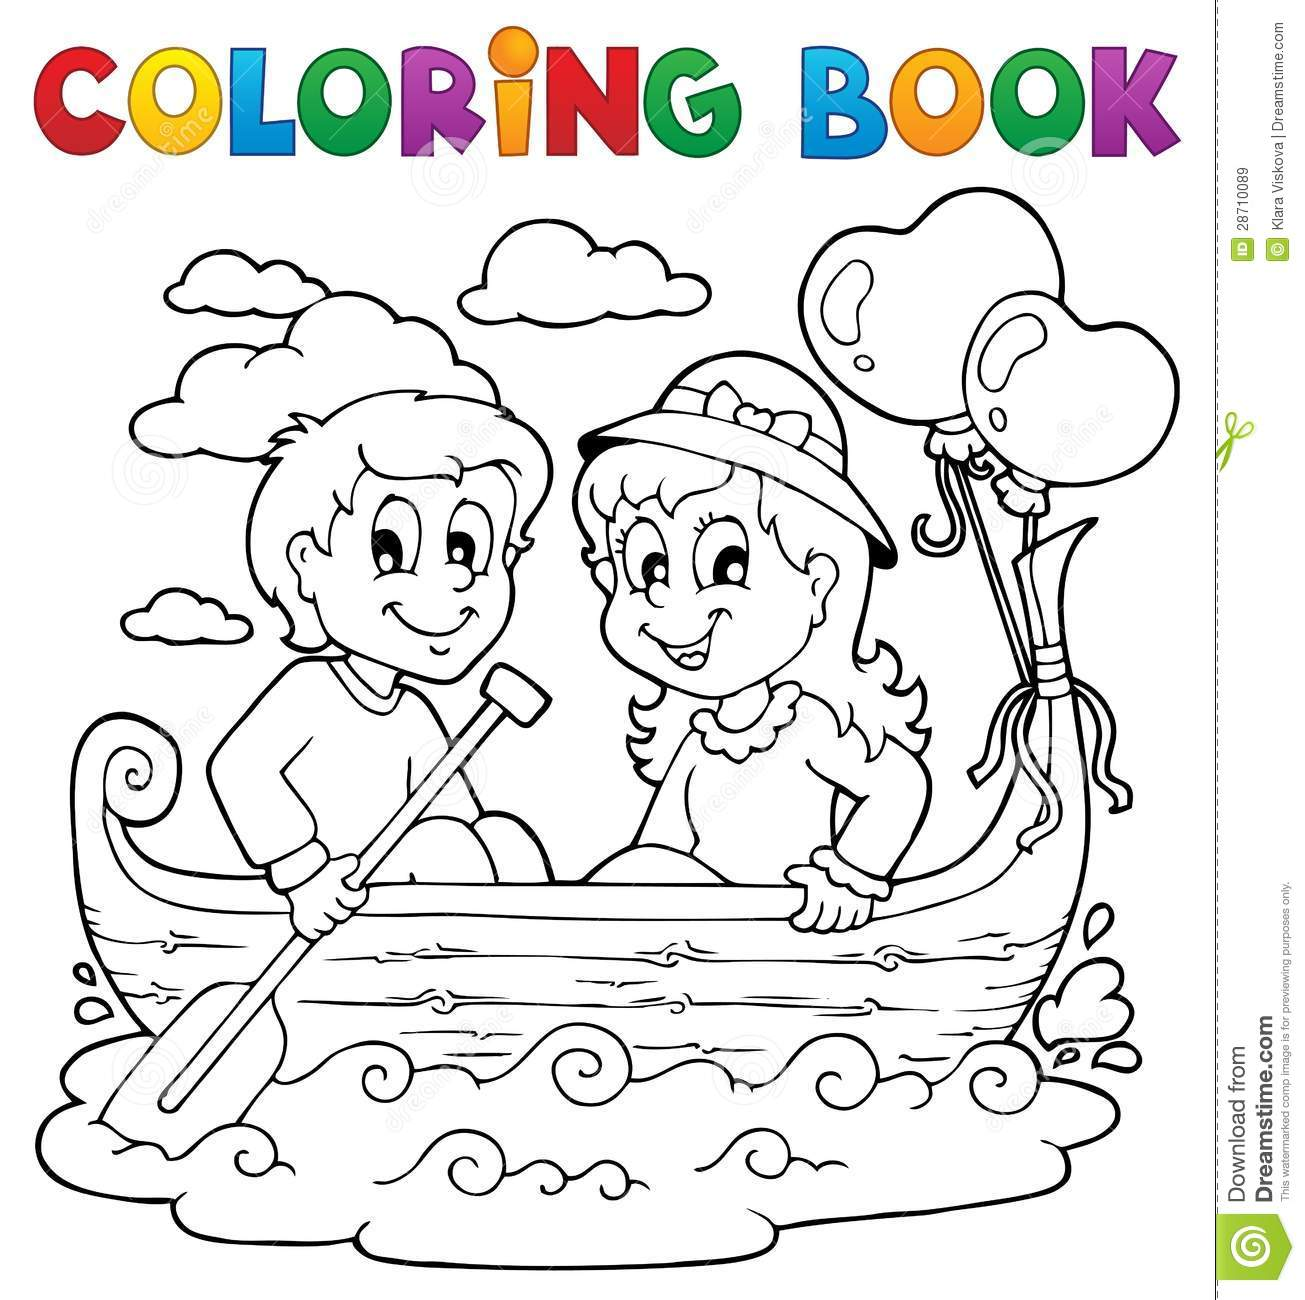 Summer design summer design vector - Coloring Book Love Theme Image 1 Royalty Free Stock Images